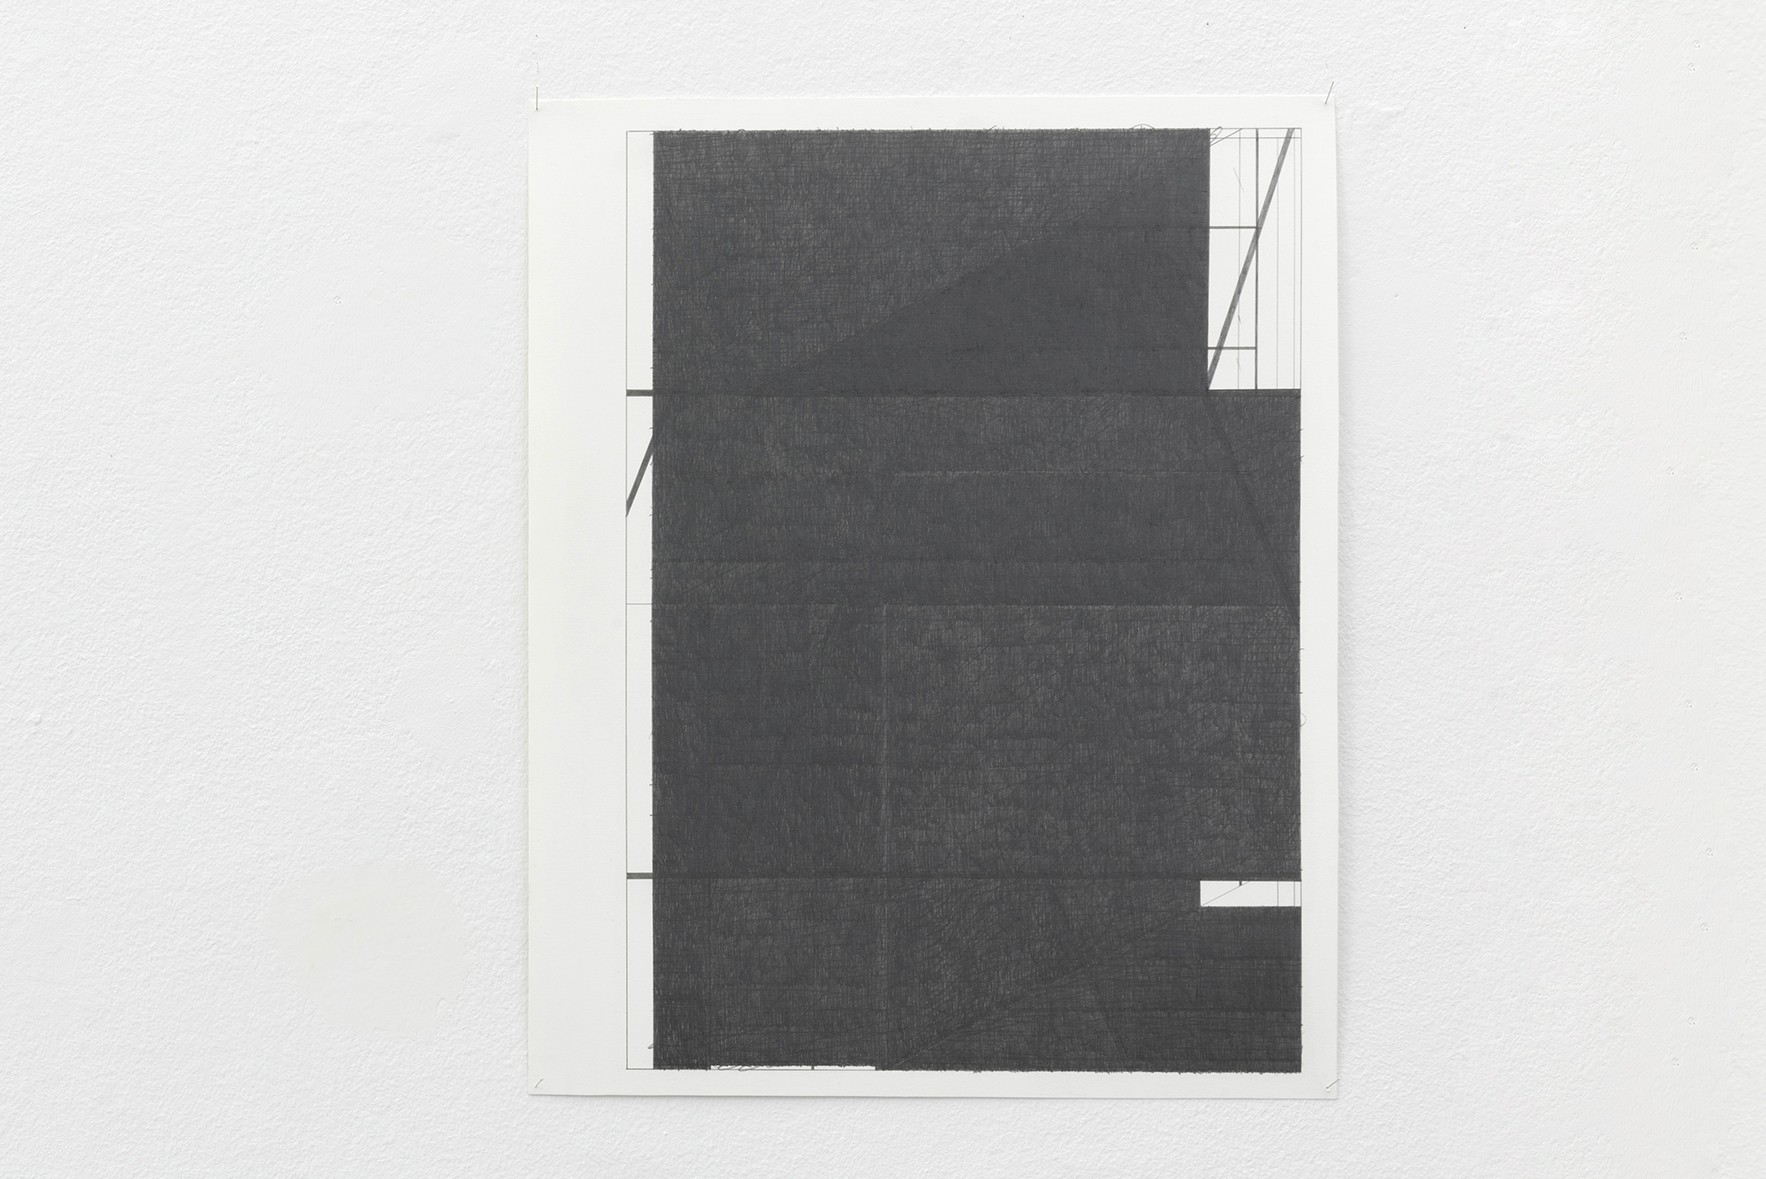 A Drawing Placed Between Two Objects, 2016 | A Drawing Placed Between Two Objects (with Mark Manders) | ProjecteSD